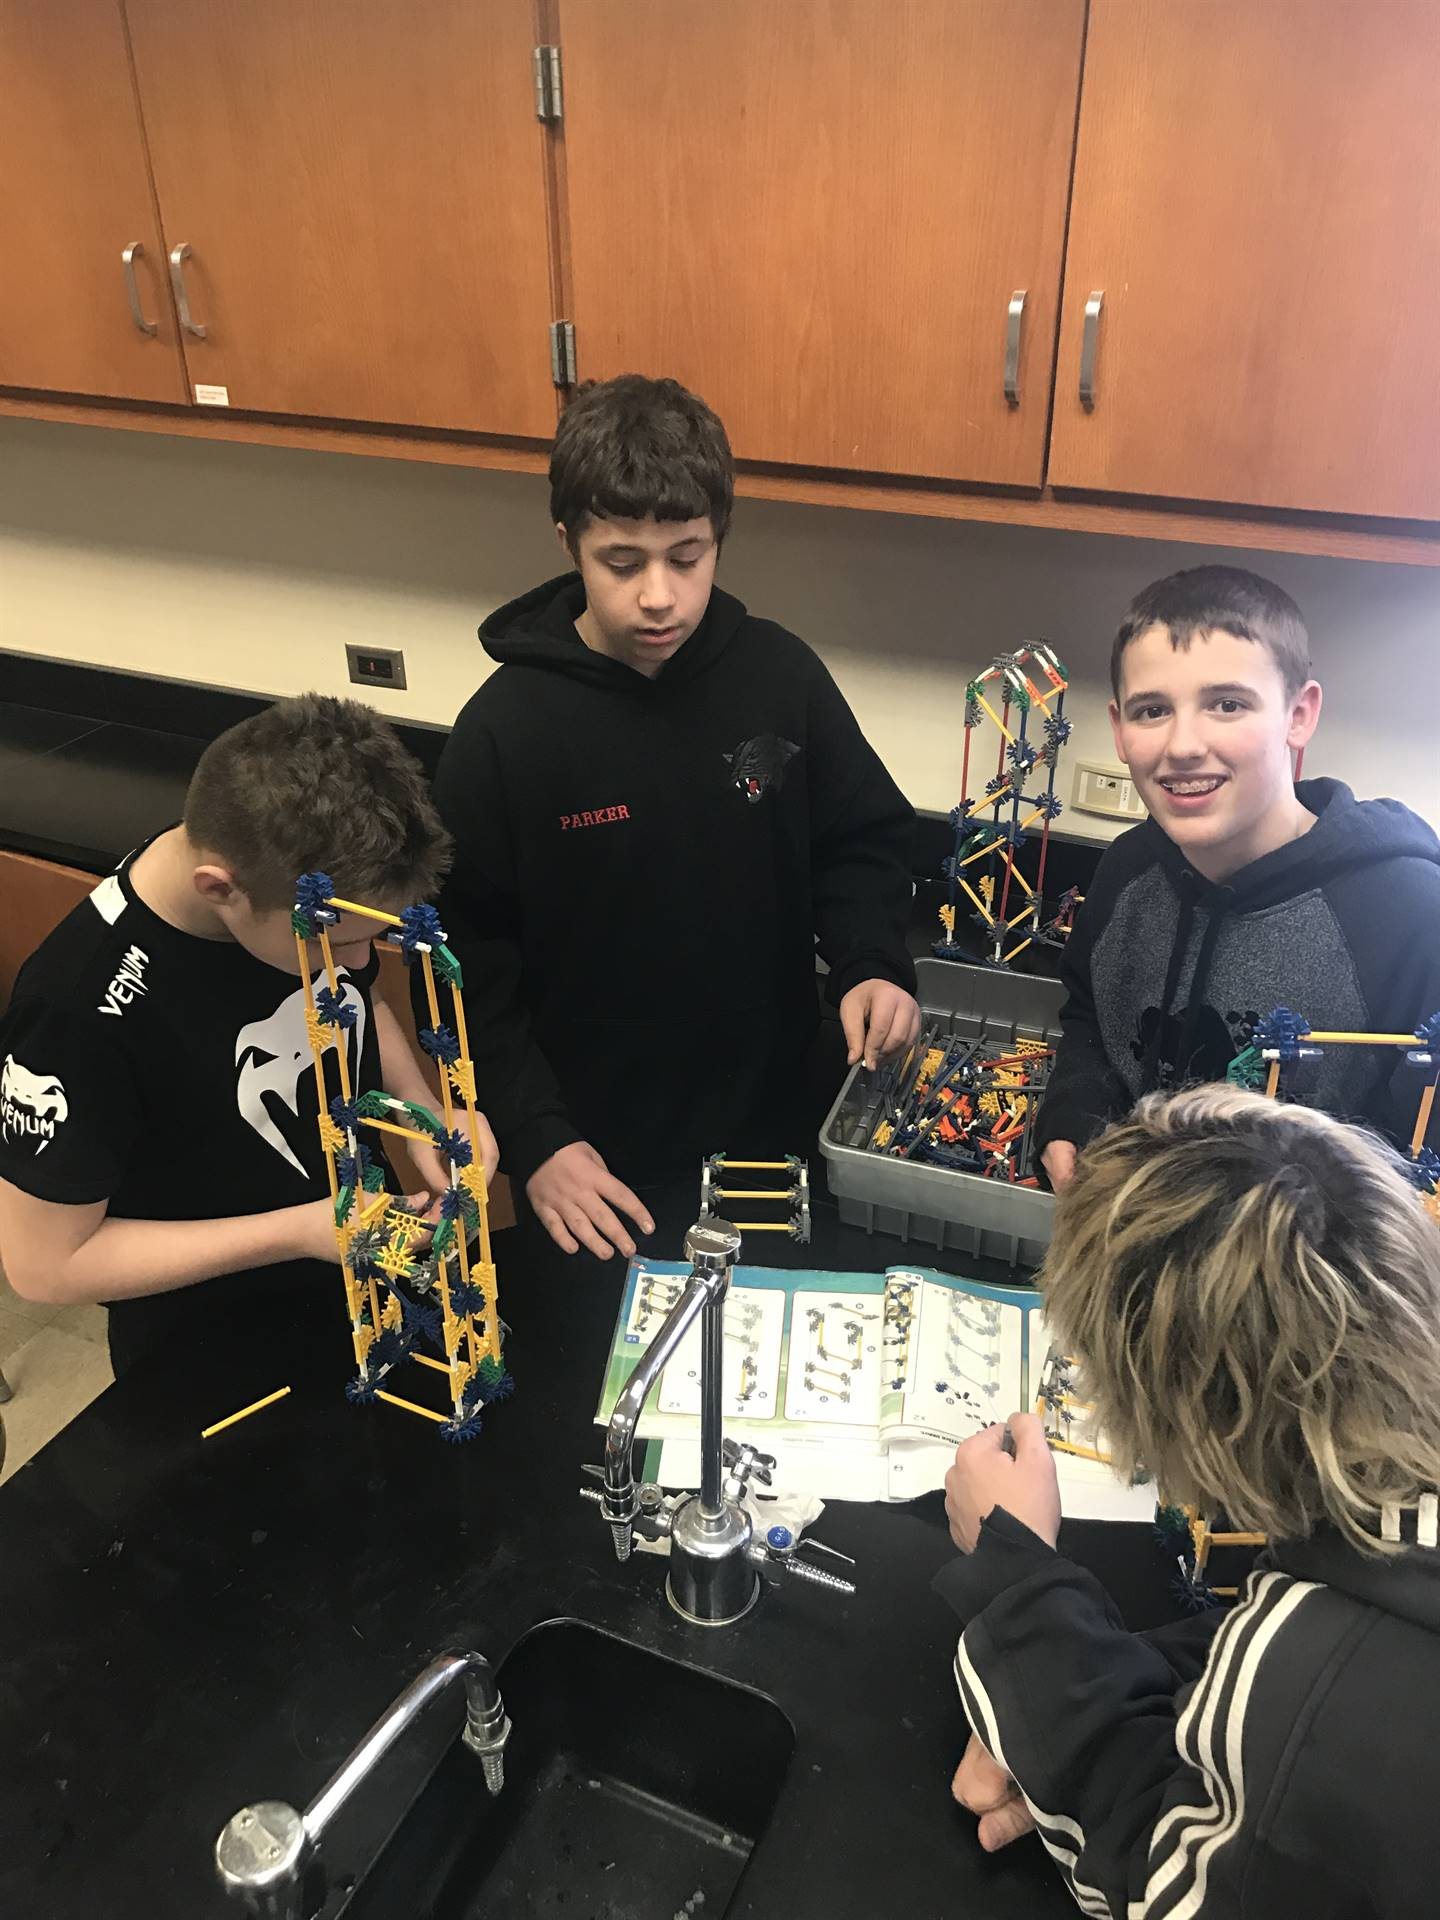 8th grade STEM students building with K'nex